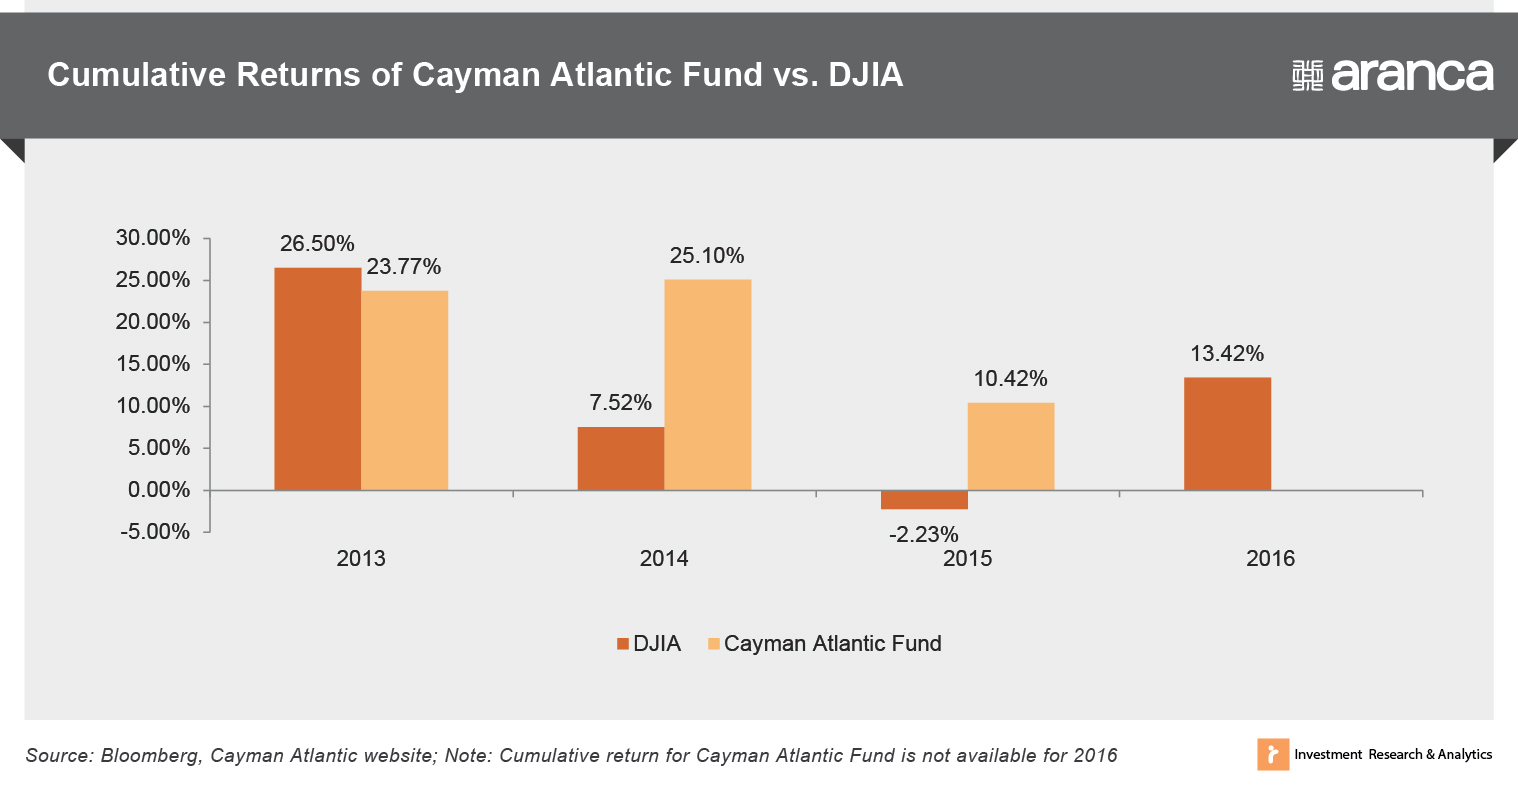 Cumulative Returns of Cayman Atlantic Fund versus DJIA